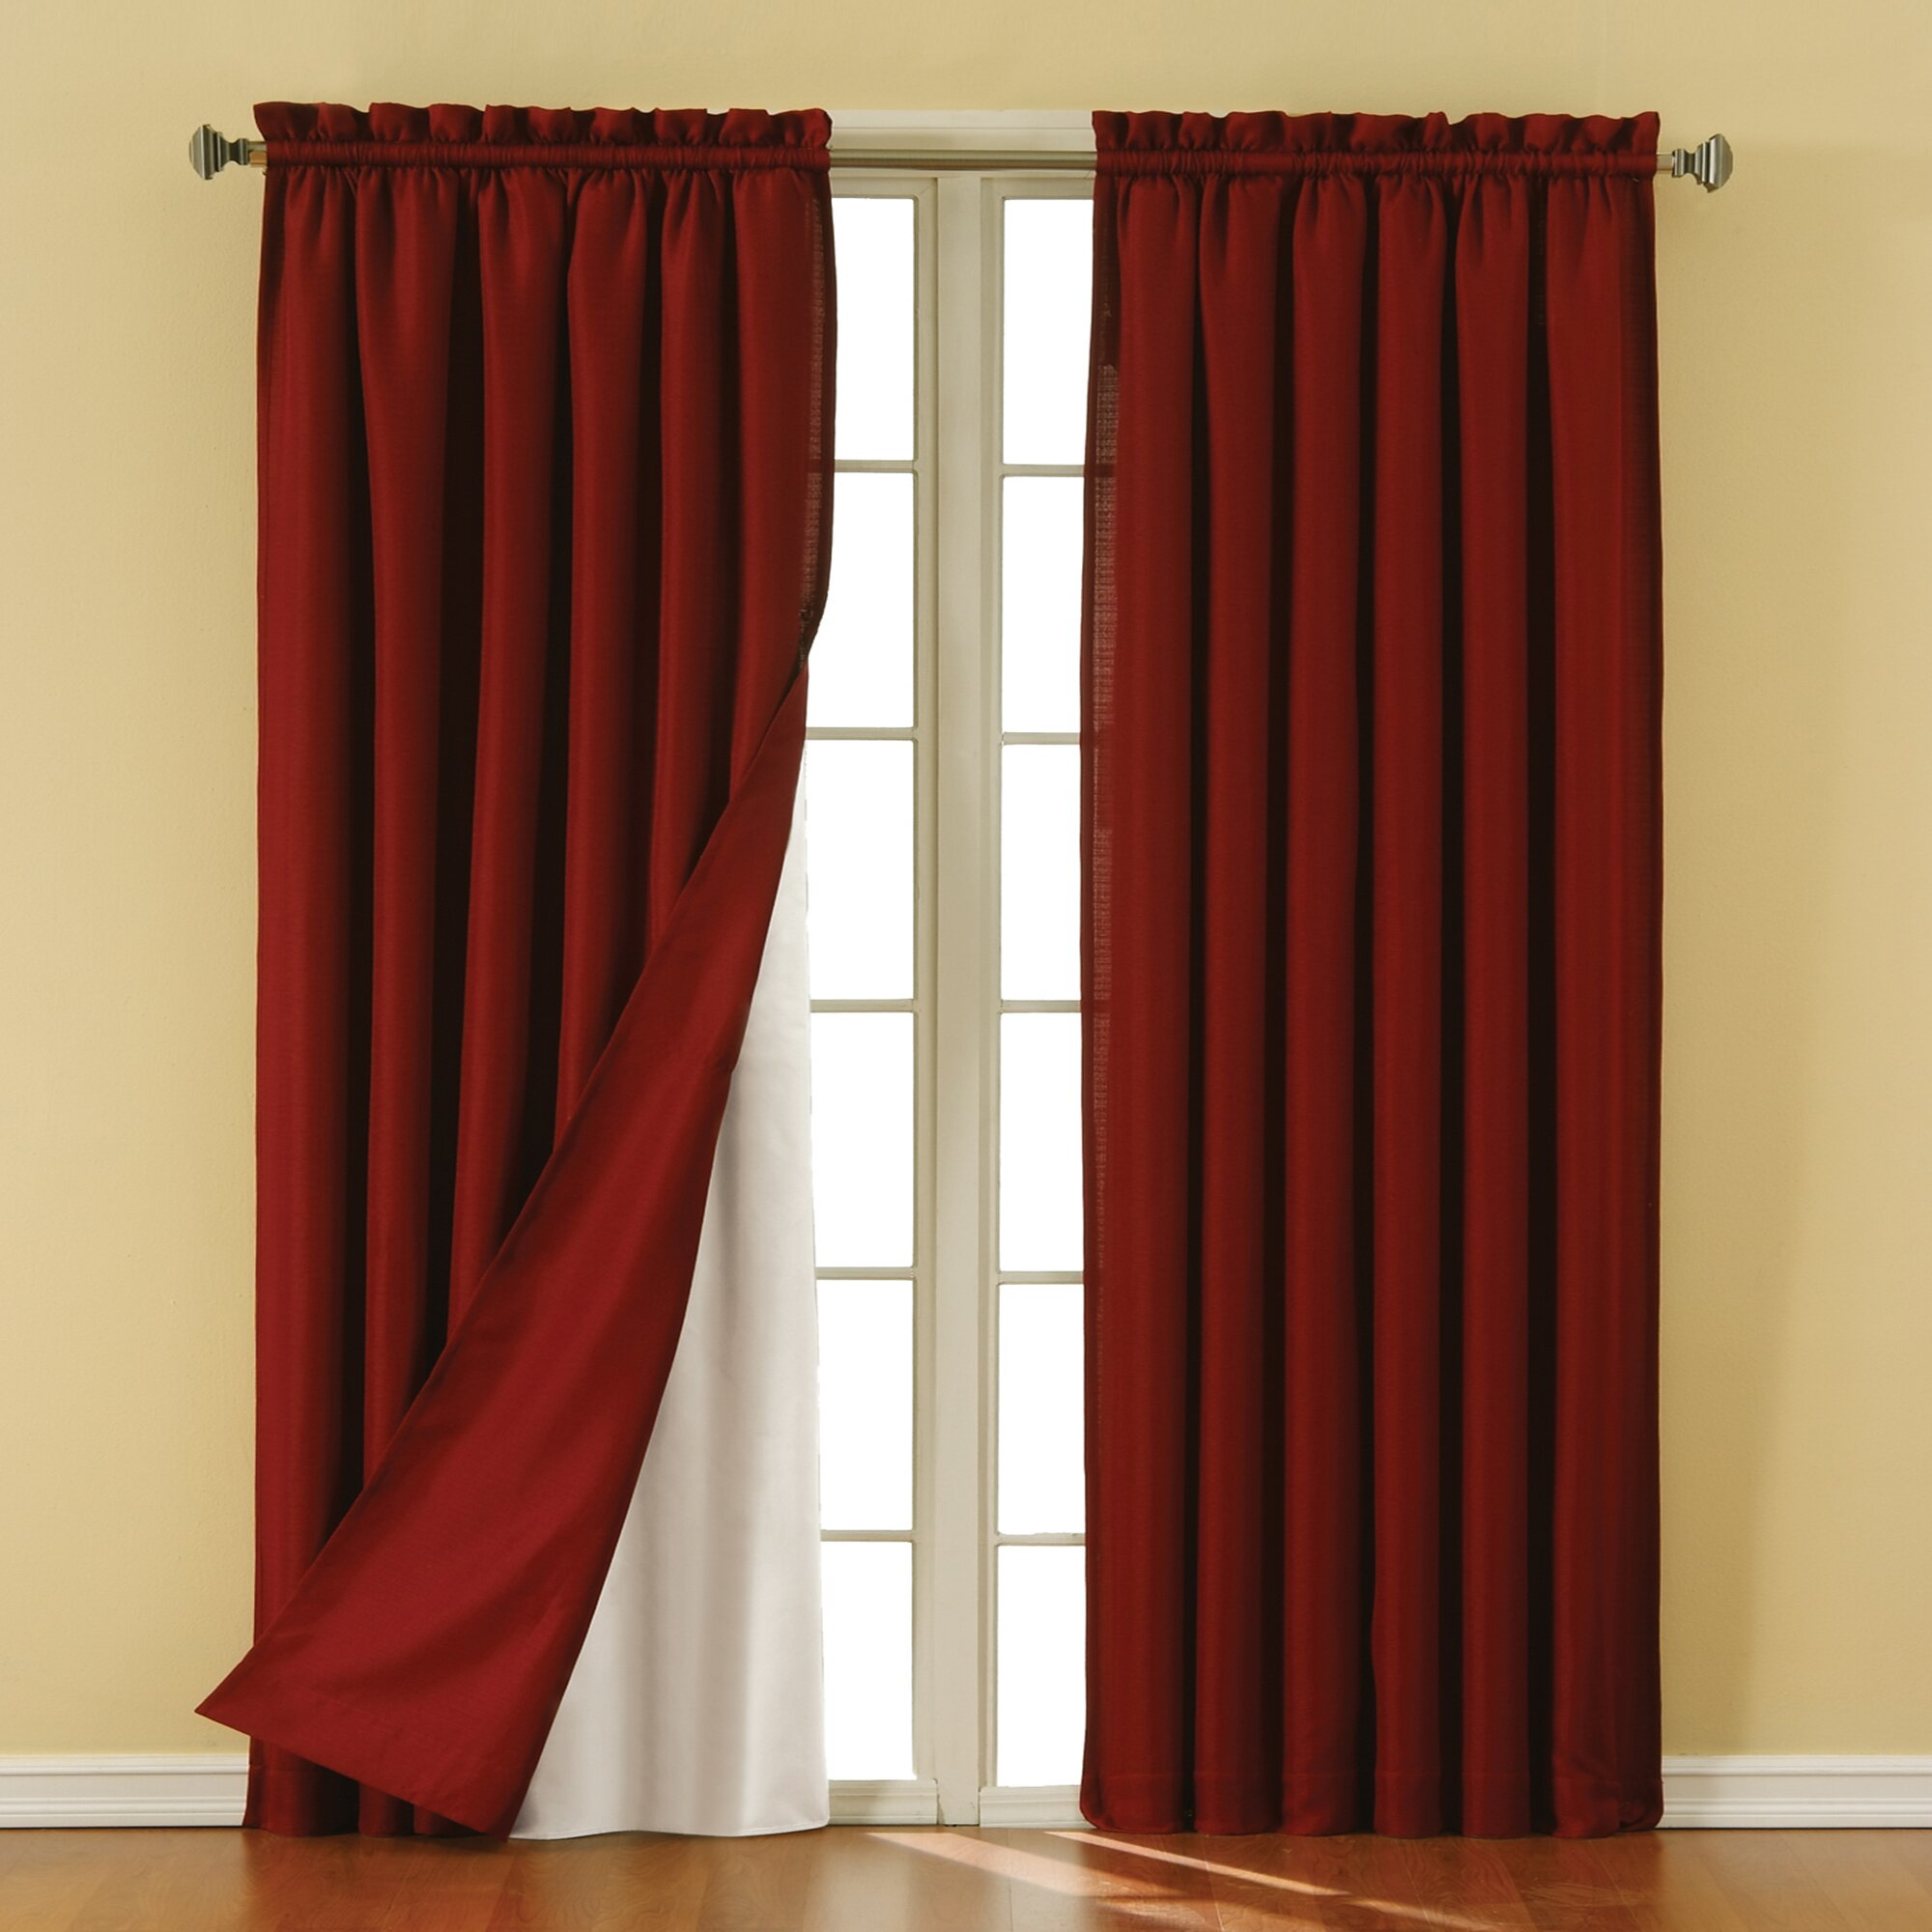 Eclipse Curtains Solid Blackout Rod pocket Curtain Panel